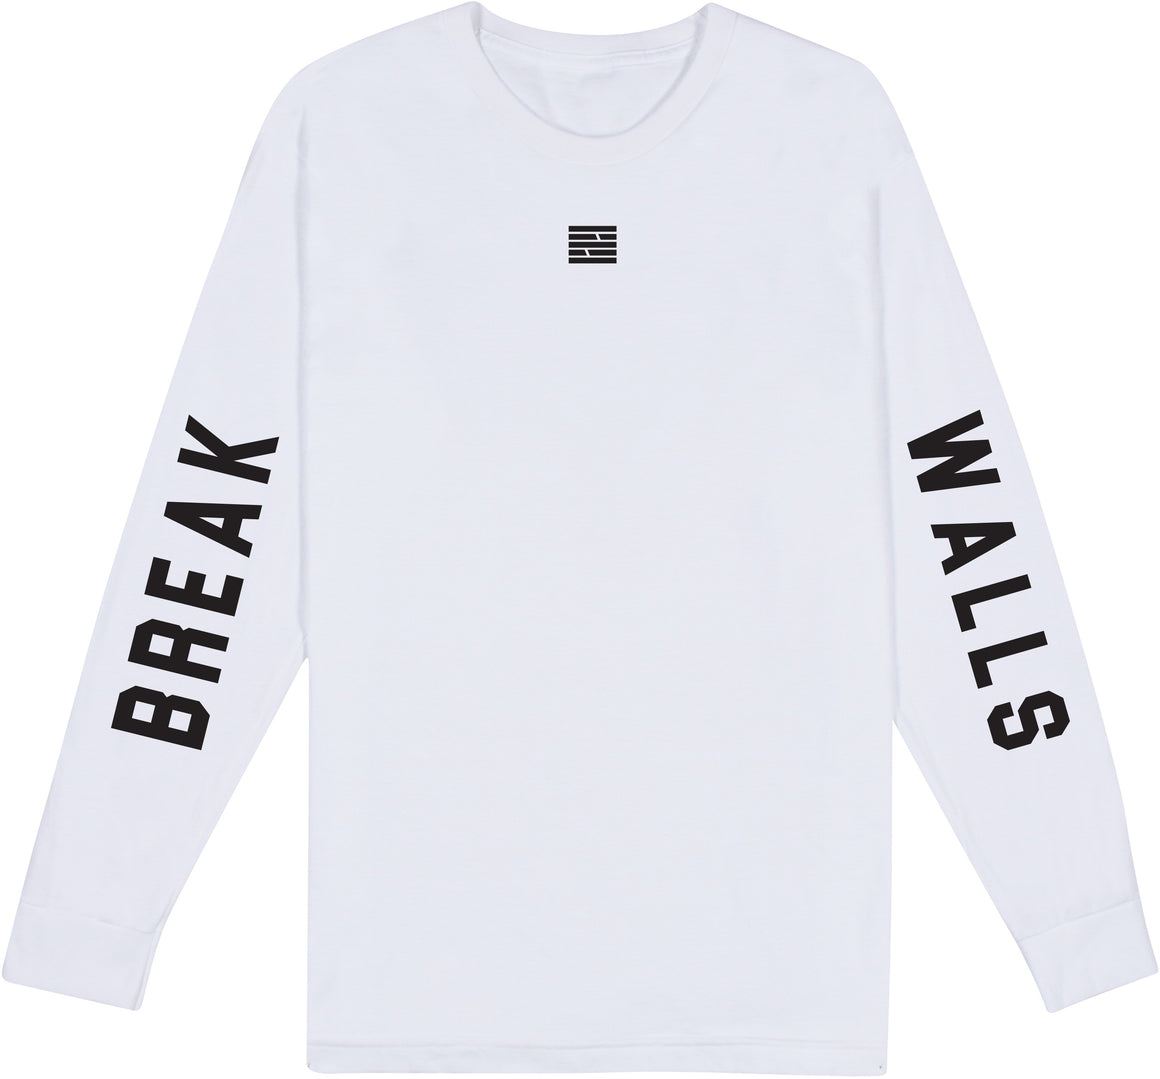 Graphic Logo Long Sleeve Tee - White